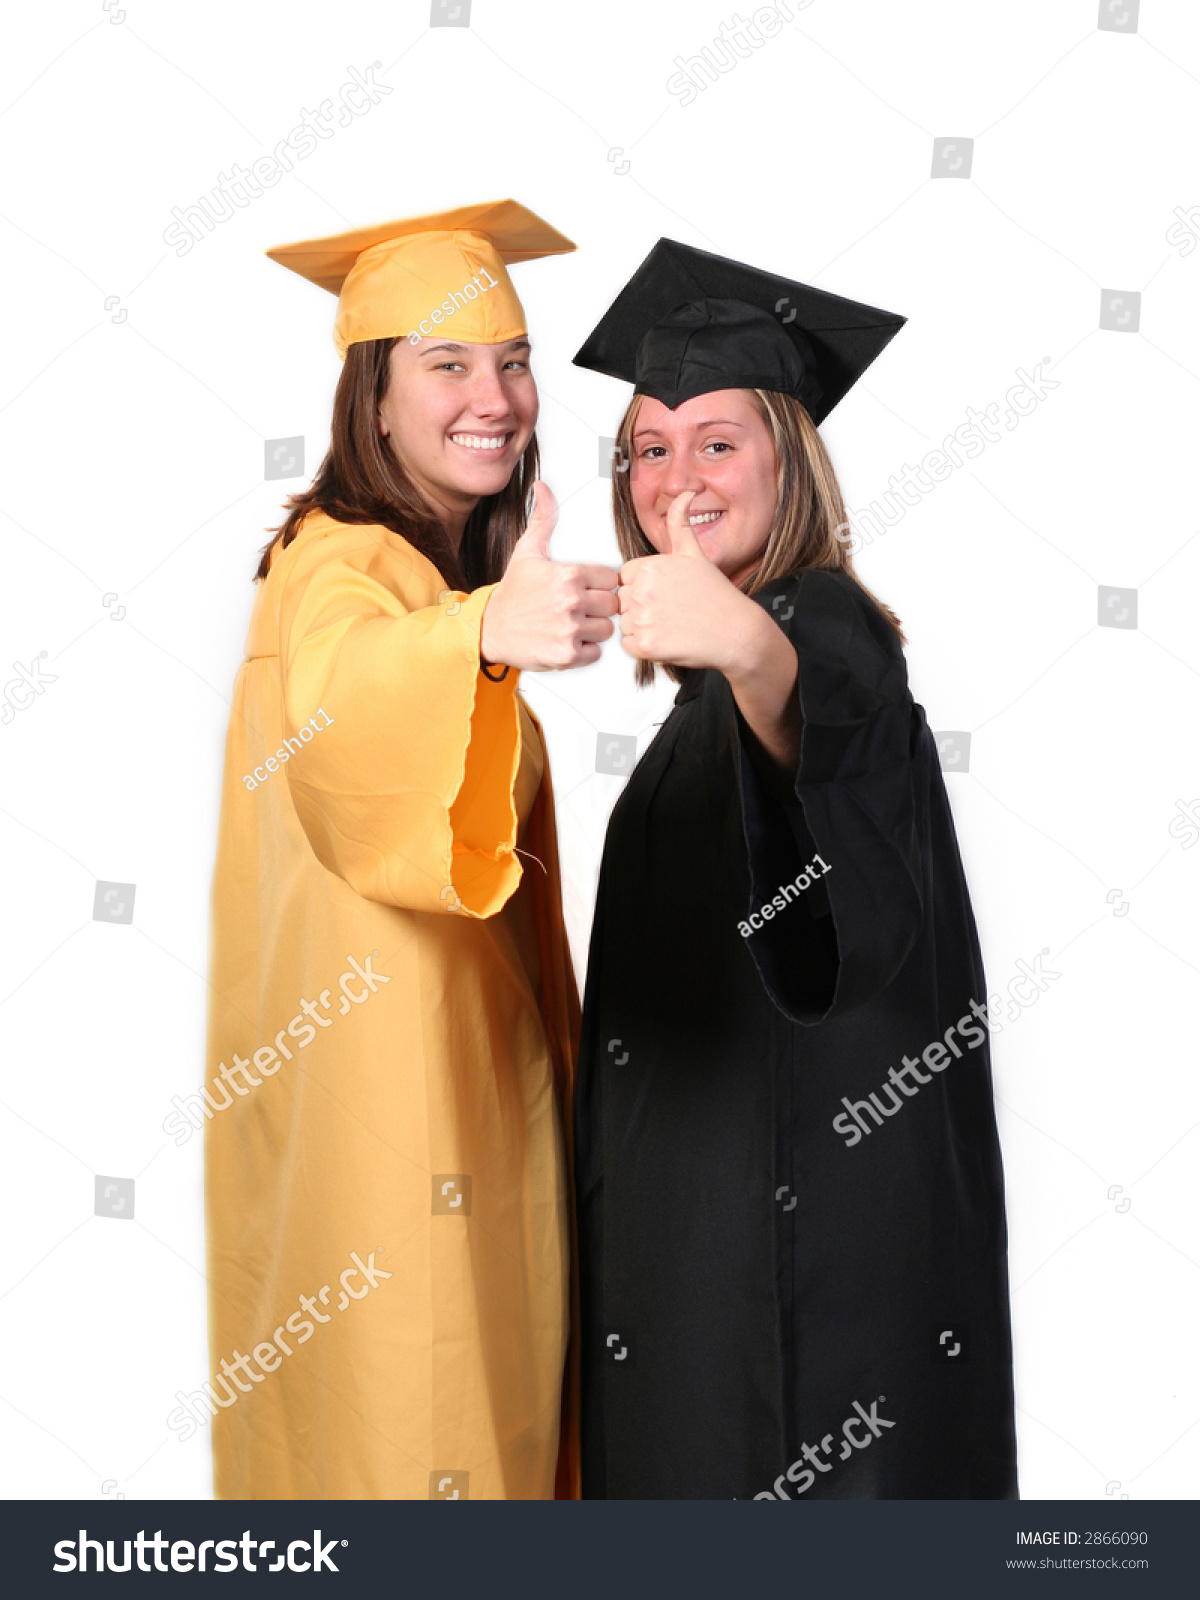 Two Girls Their Caps Gowns Graduation Stock Photo (Edit Now) 2866090 ...